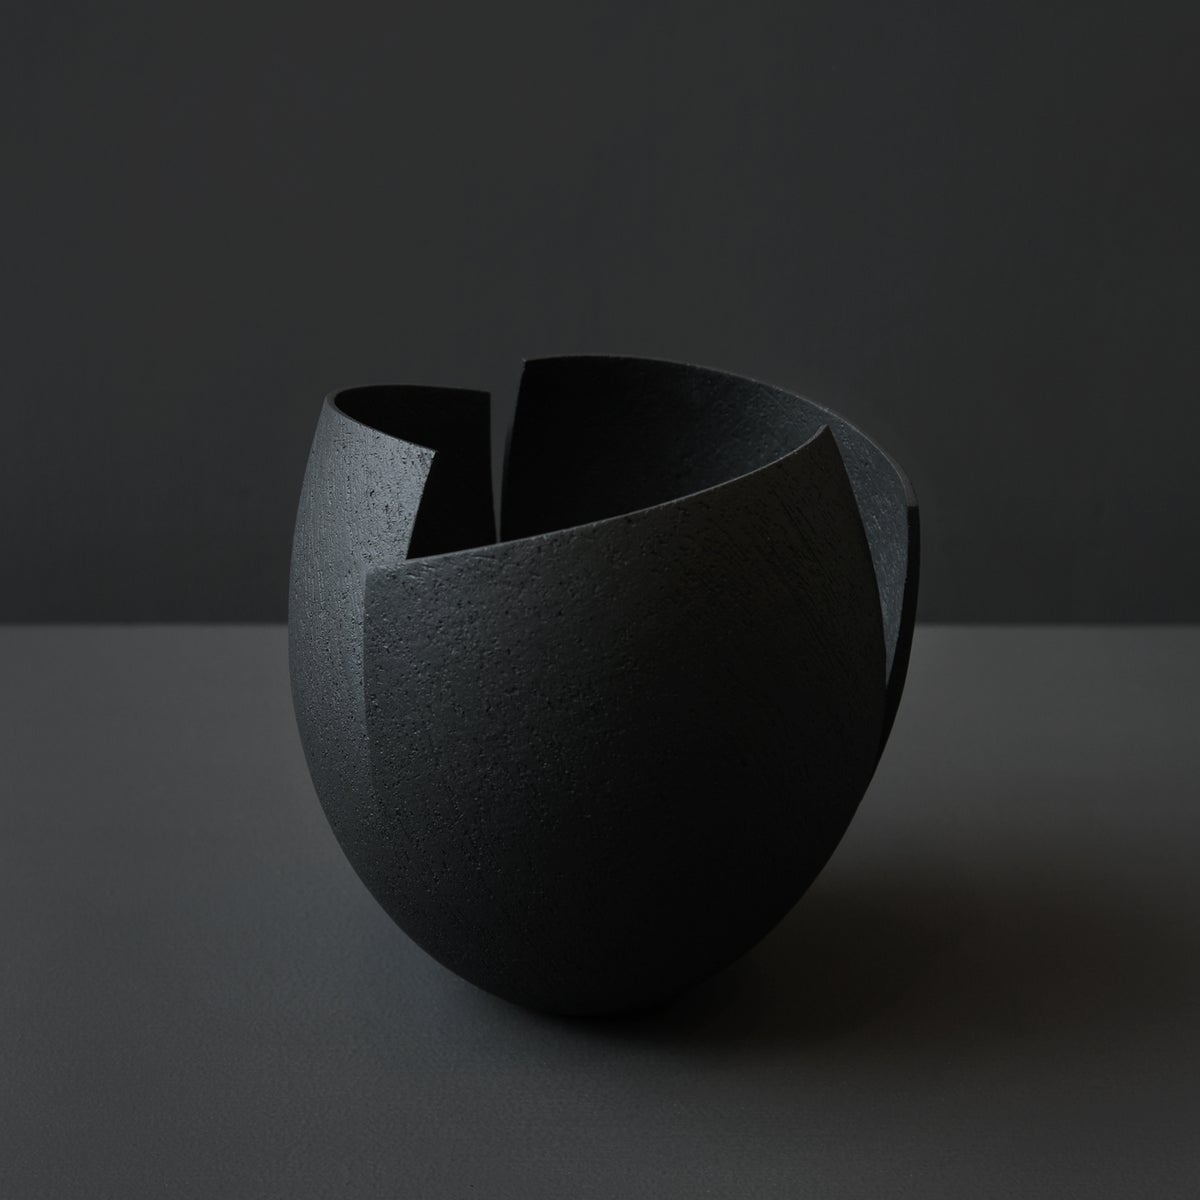 Image of Cut & Altered Vessel #11 by Ashraf Hanna.